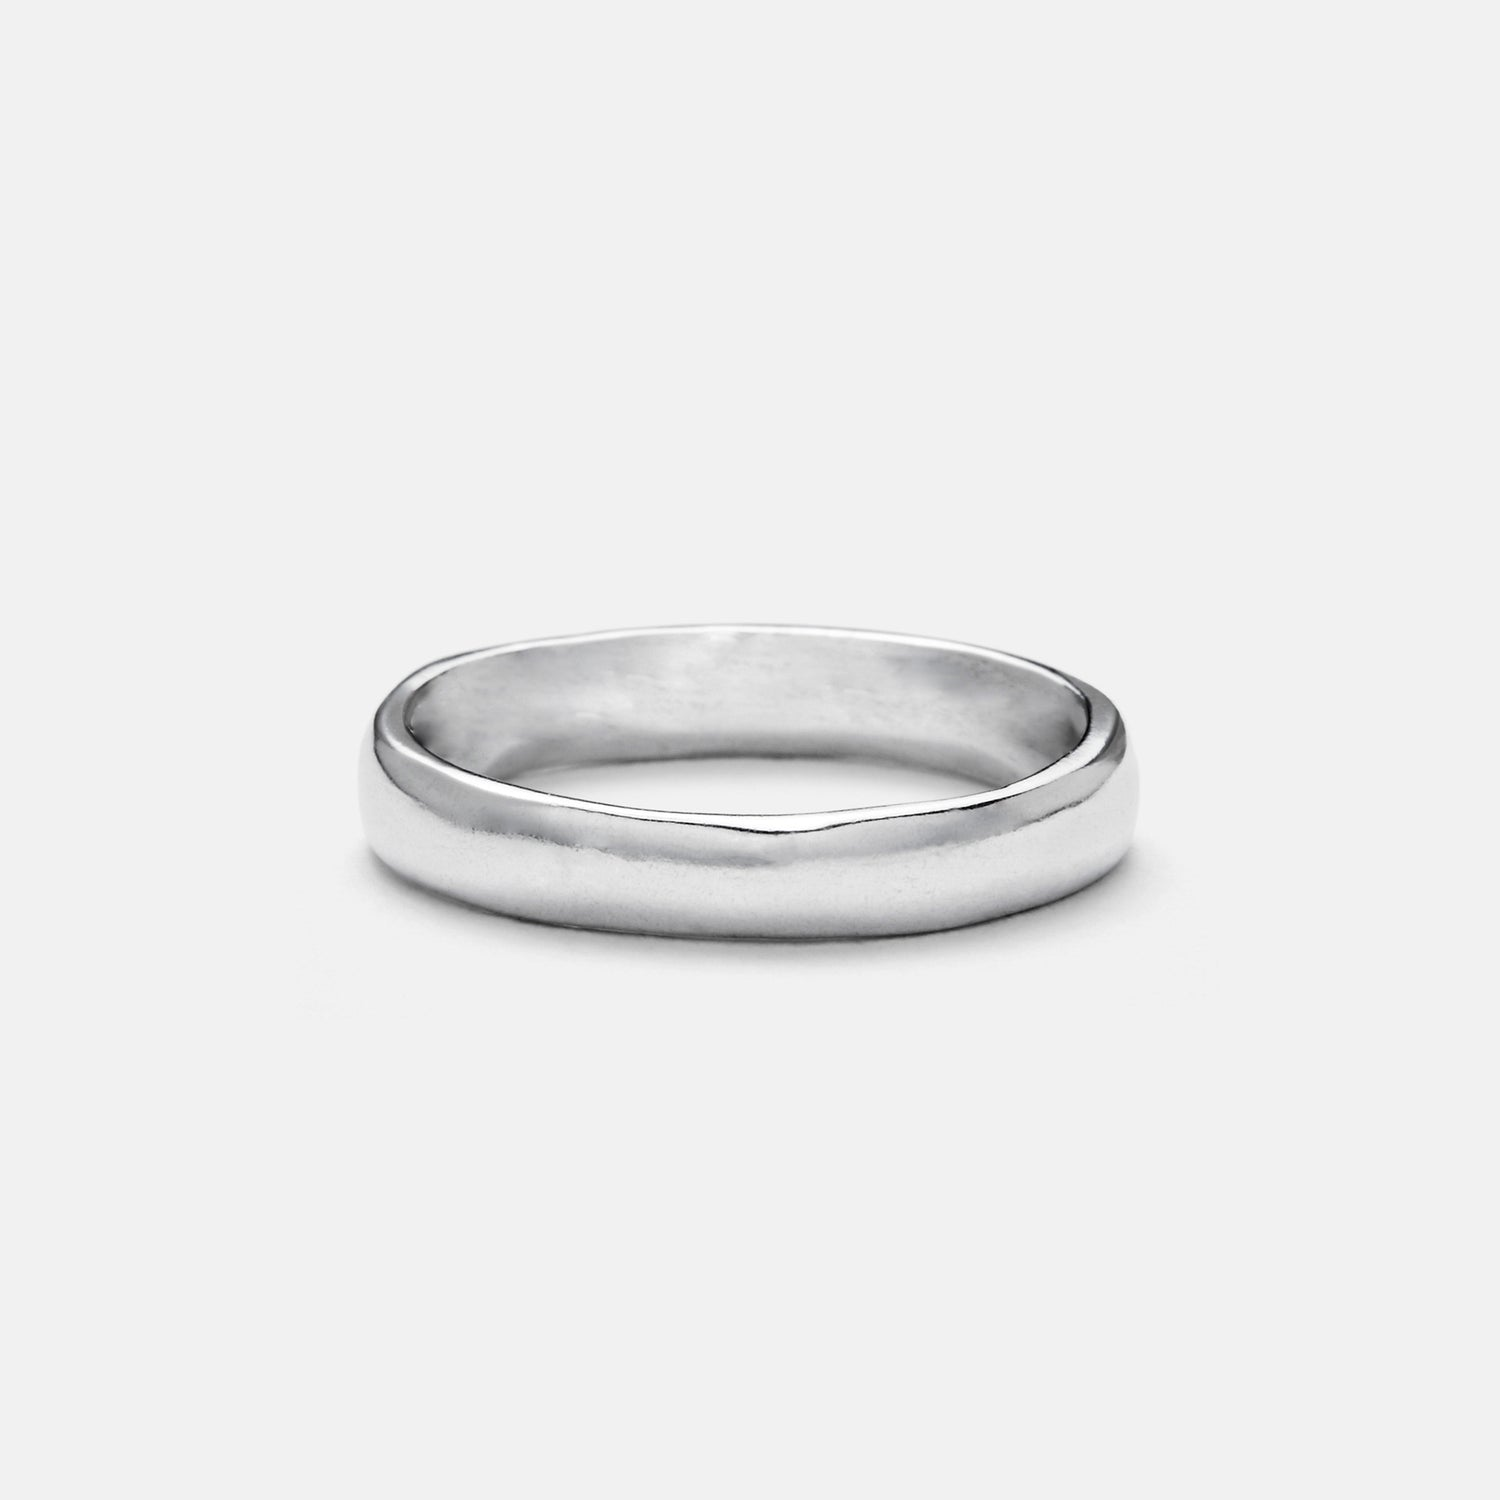 plain fine us products ring sterling band in fit handmade jewelry platinum wedding comfort bands silver